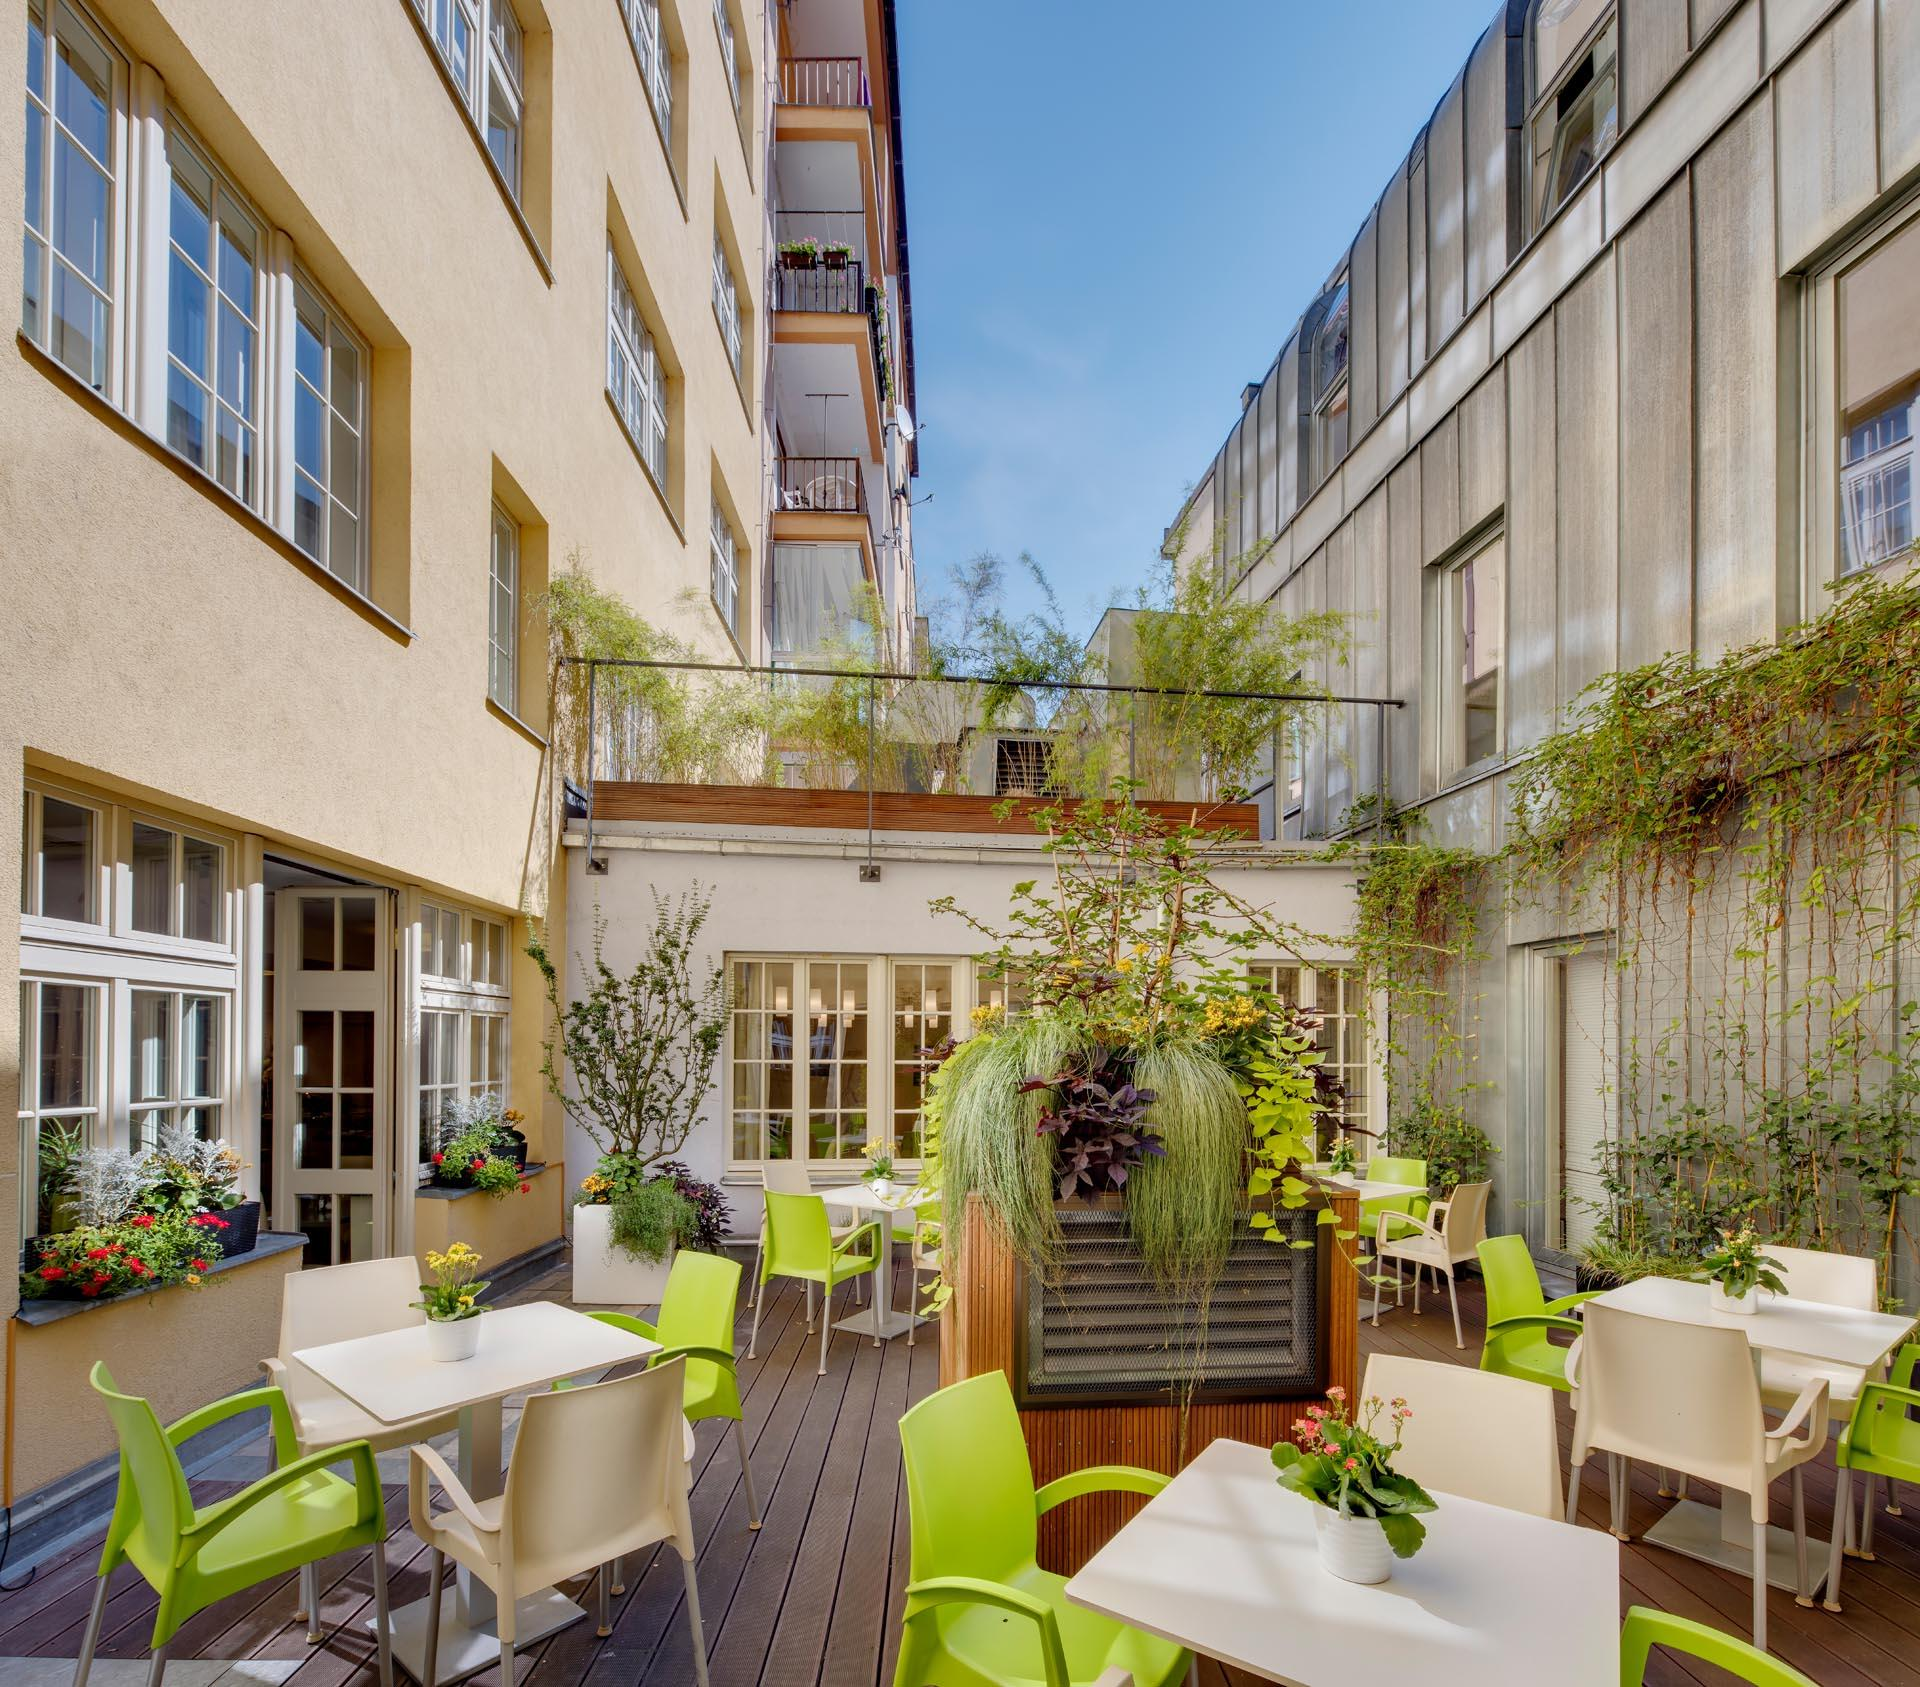 Terrace at Hotel Clement Prague